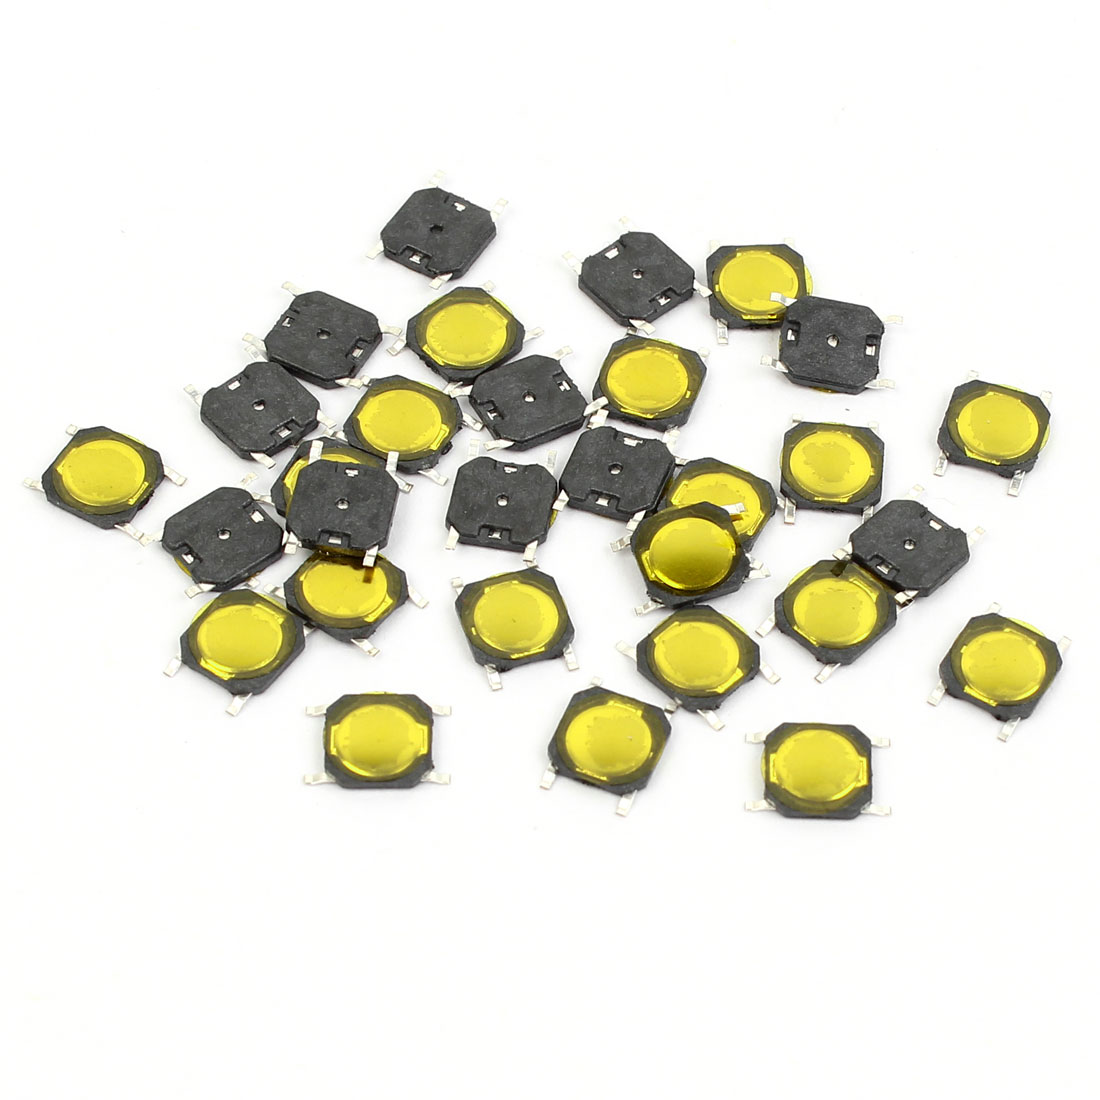 30 Pcs 5mmx5mmx0.8mm 4Pins SMD Momentary Push Button Tact Tactile Micro Switches